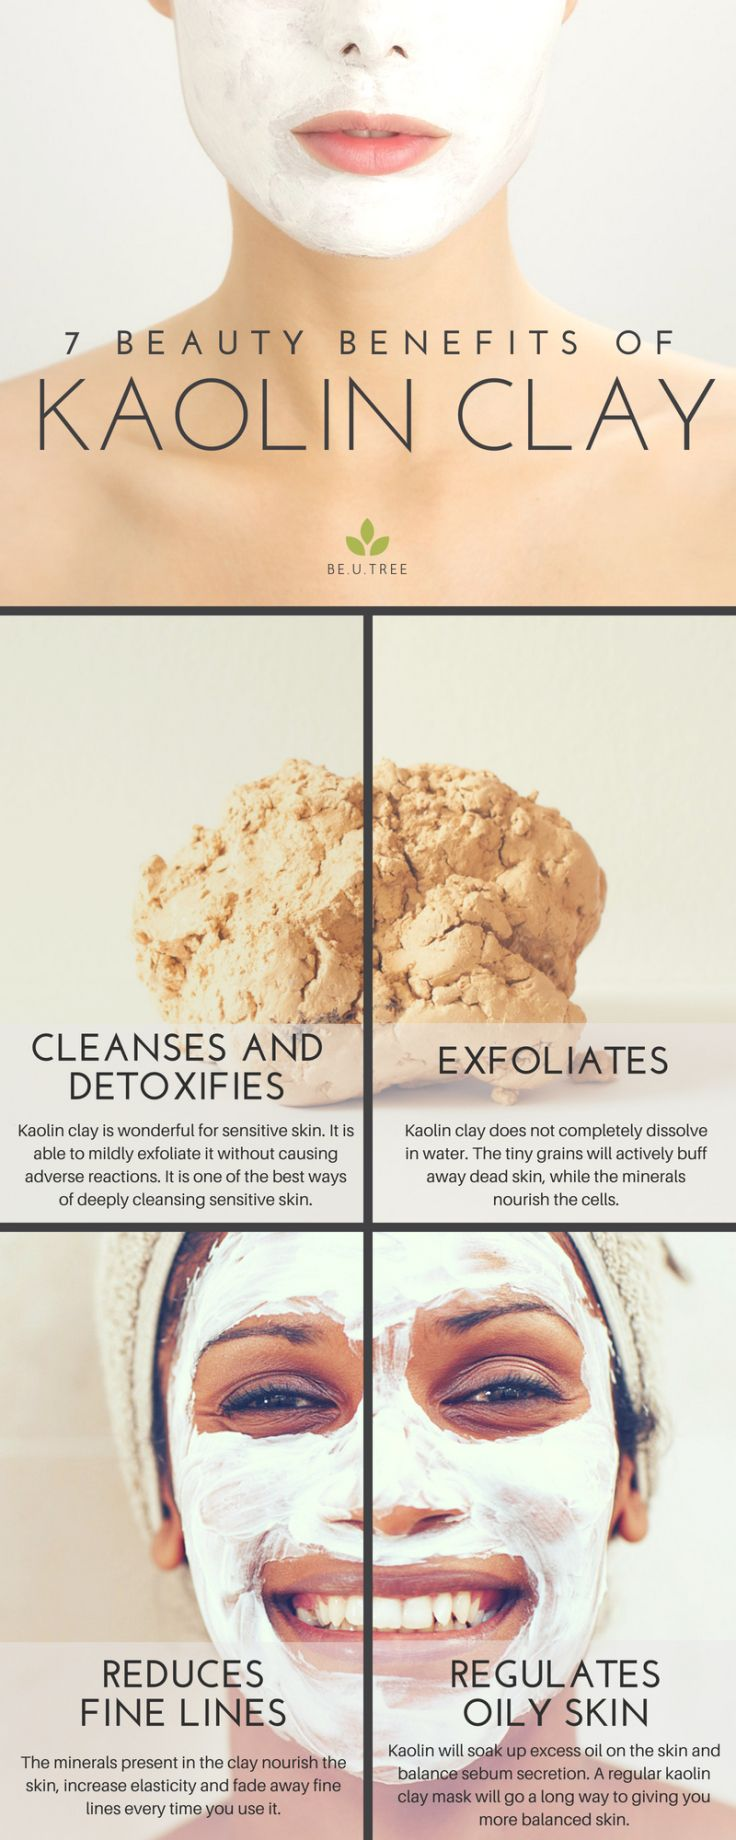 7 Reasons To Have More Kaolin Clay Skincare Days Anti Wrinkle Face Cream Kaolin Clay Benefits Treating Oily Skin